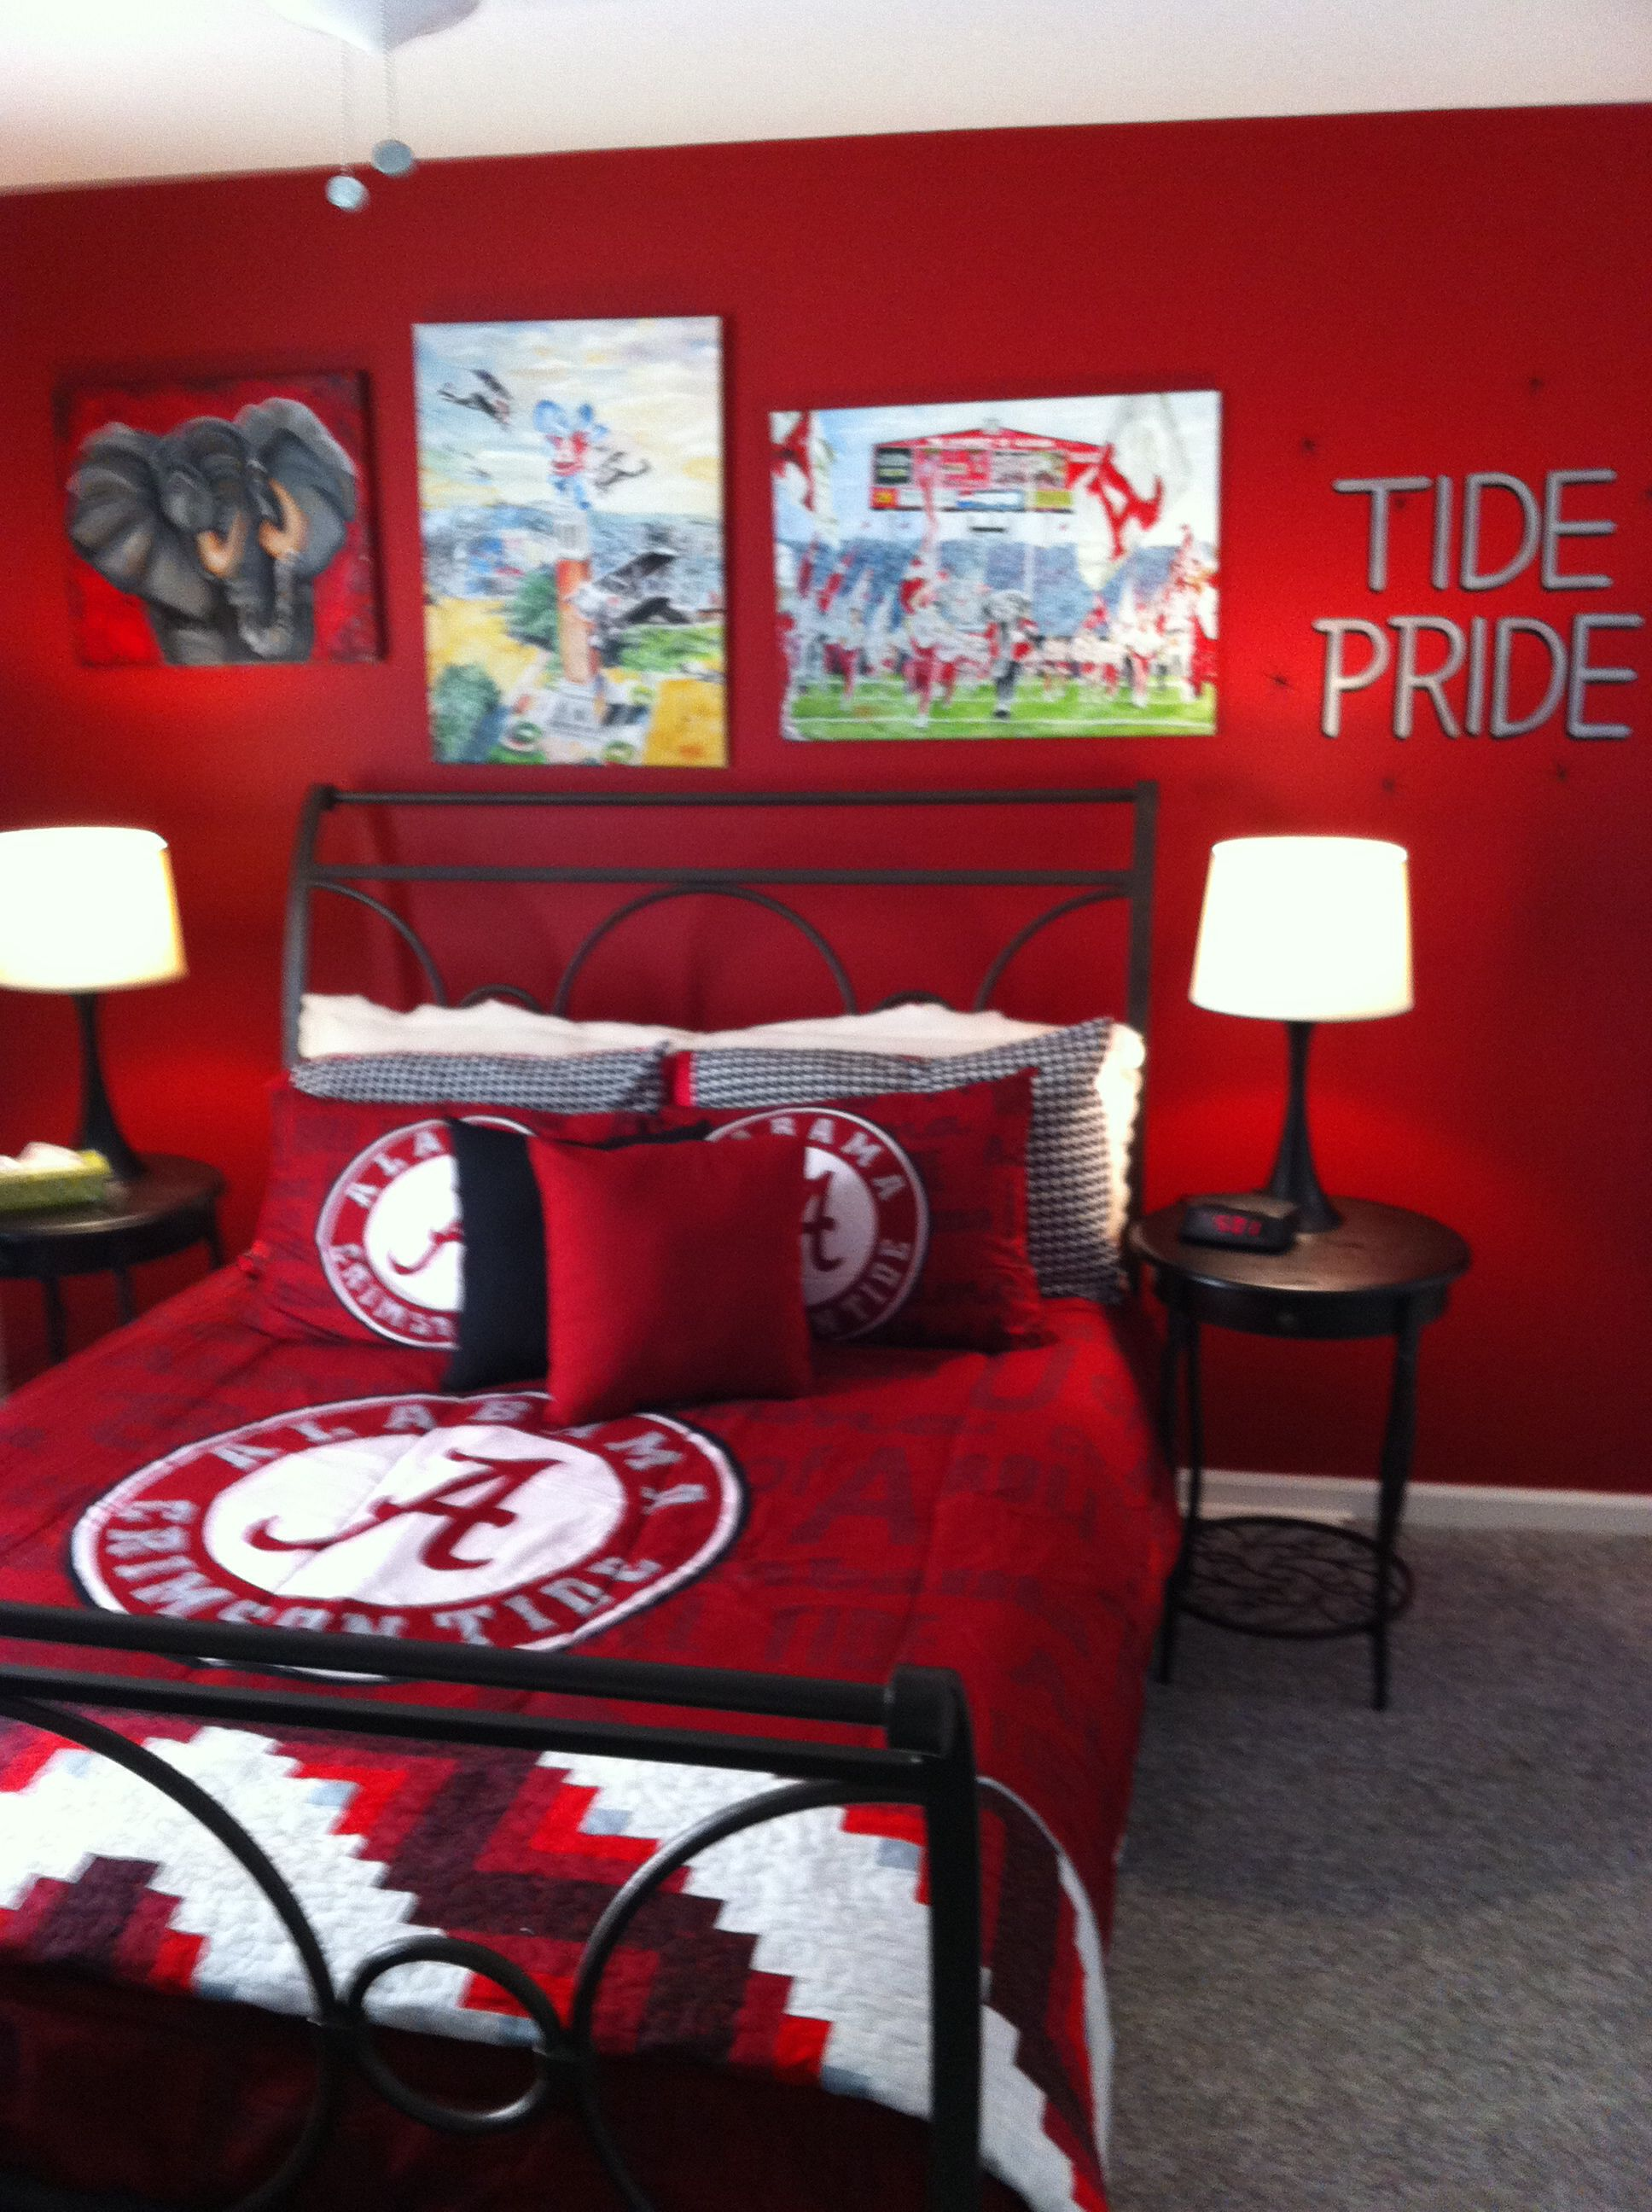 Alabama Bedroom Rolltidewareagle Sports Stories That Inform And Entertain Plus Free Train Deck To Learn The Rules Of You Love